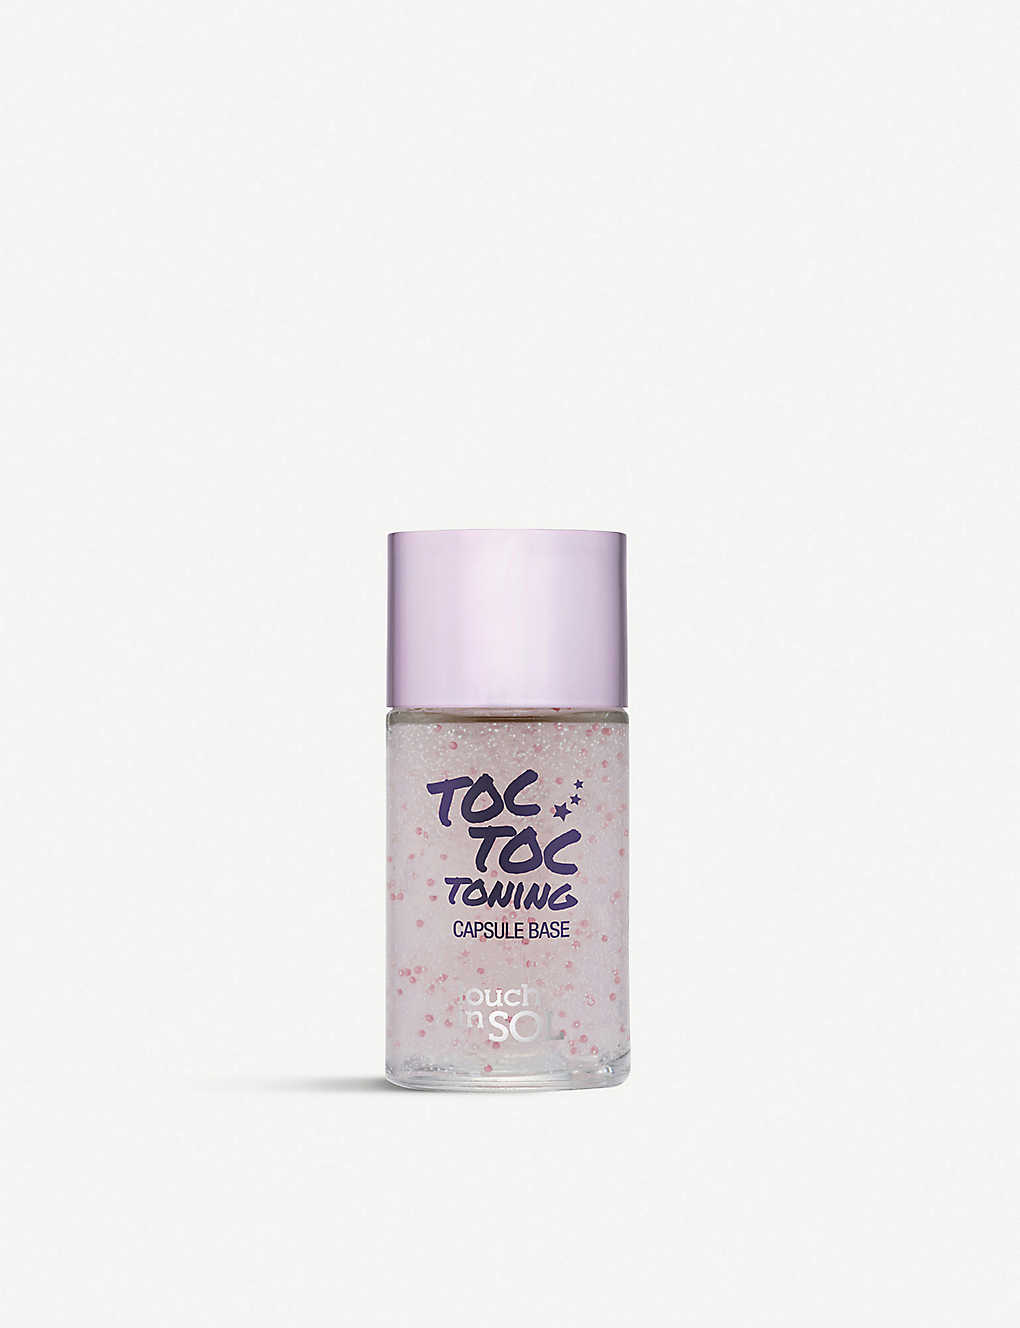 TOUCH IN SOL: Toc Toc Toning Capsule Base 32g